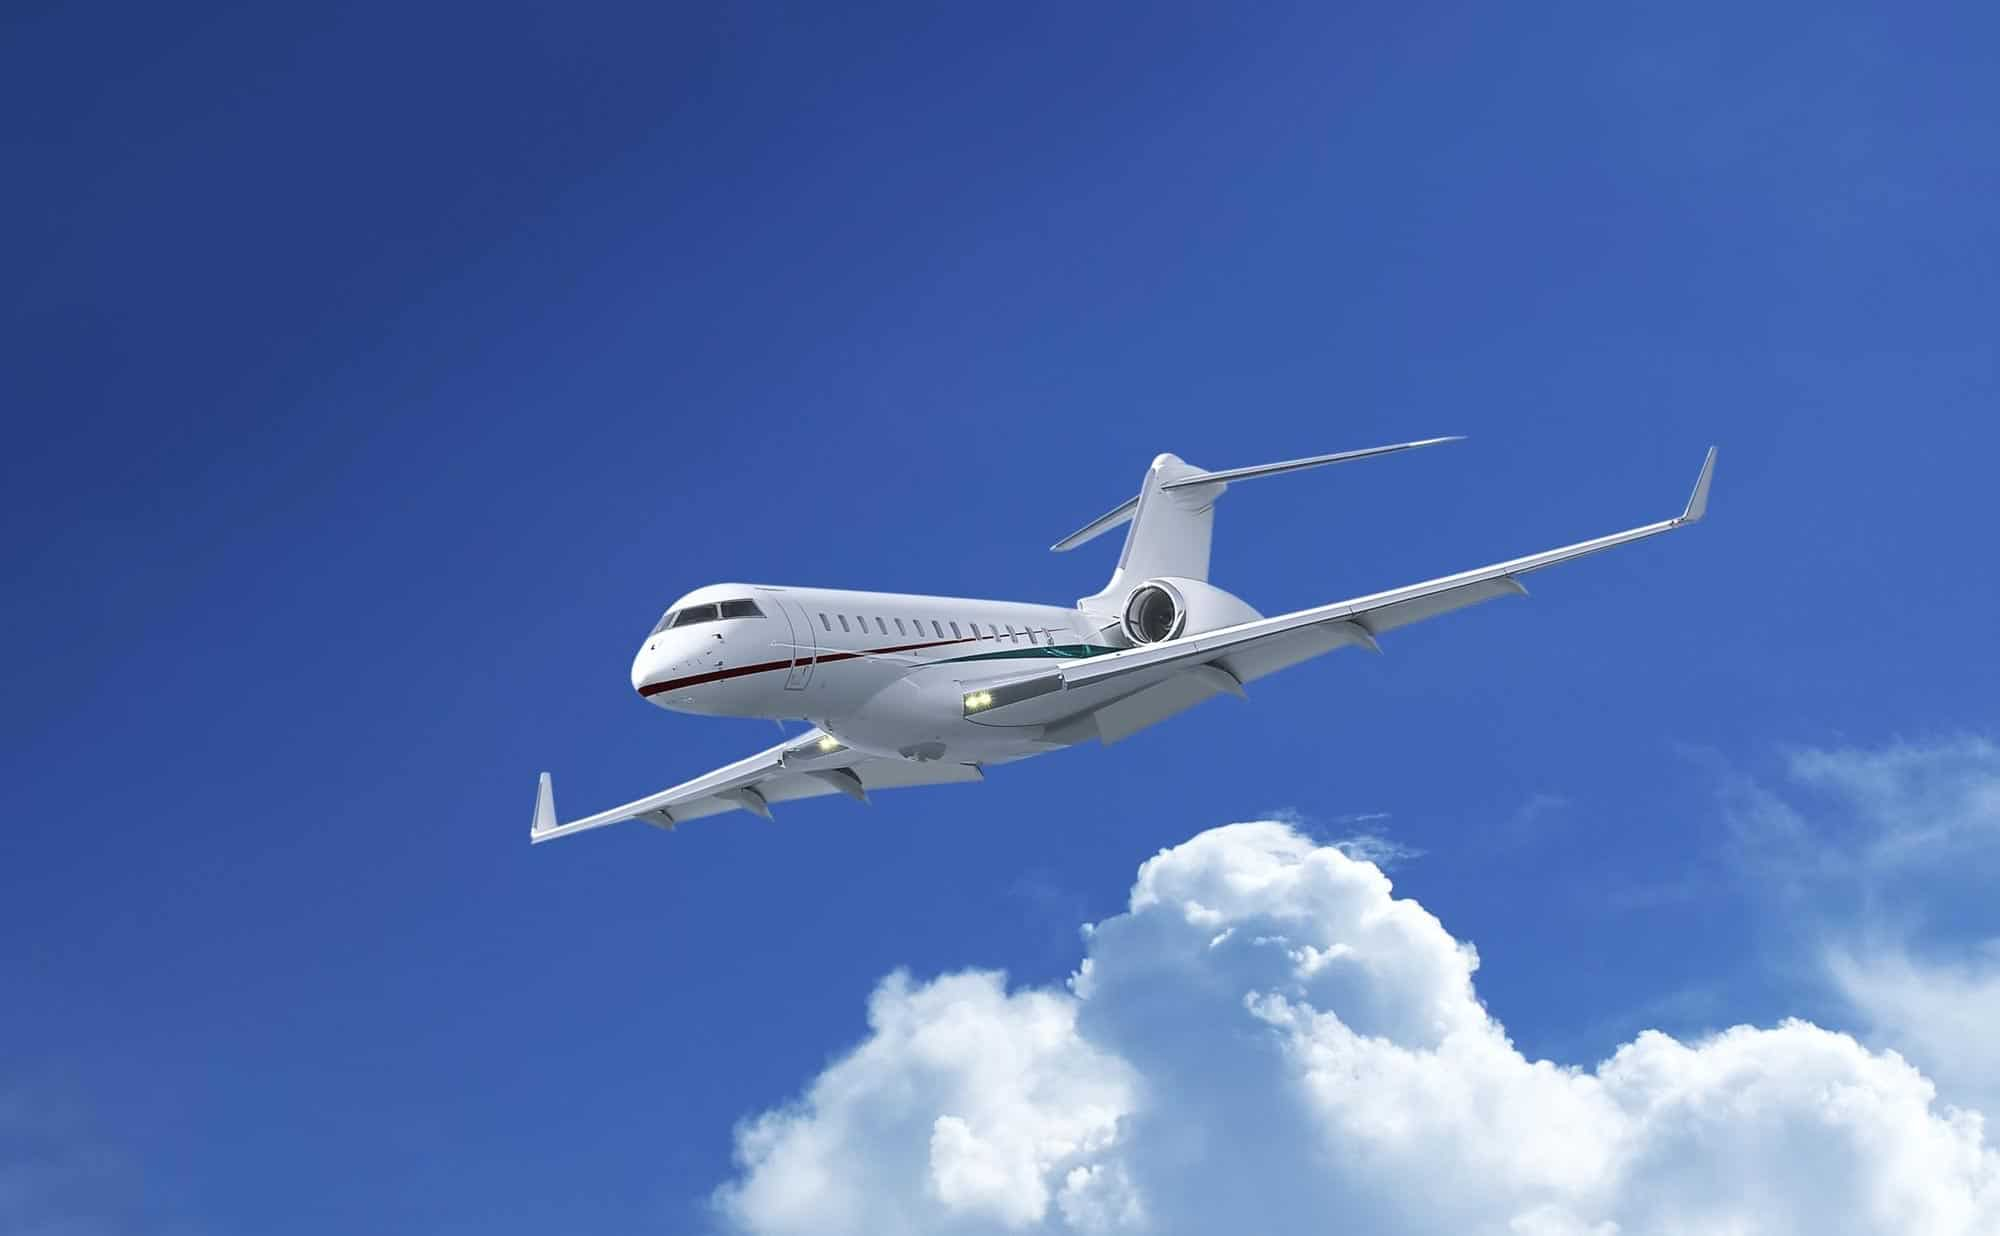 White color private jet in a blue sky with clouds